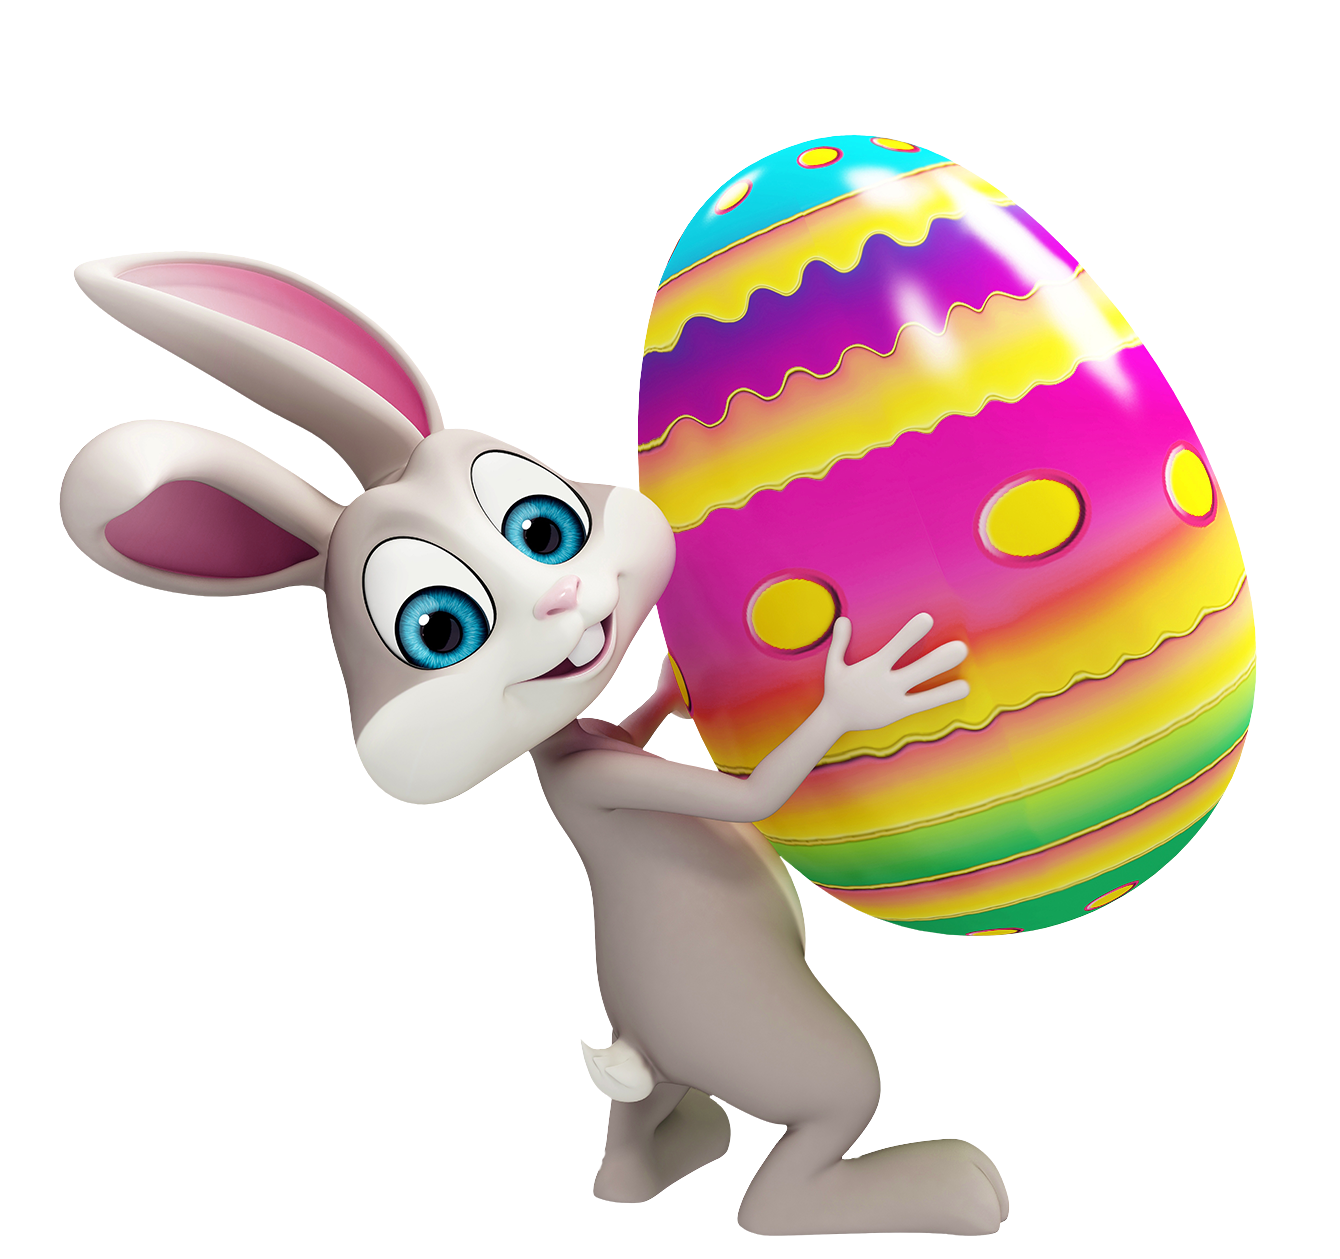 Easter Bunny with Colorful Egg Transparent PNG Clipart.